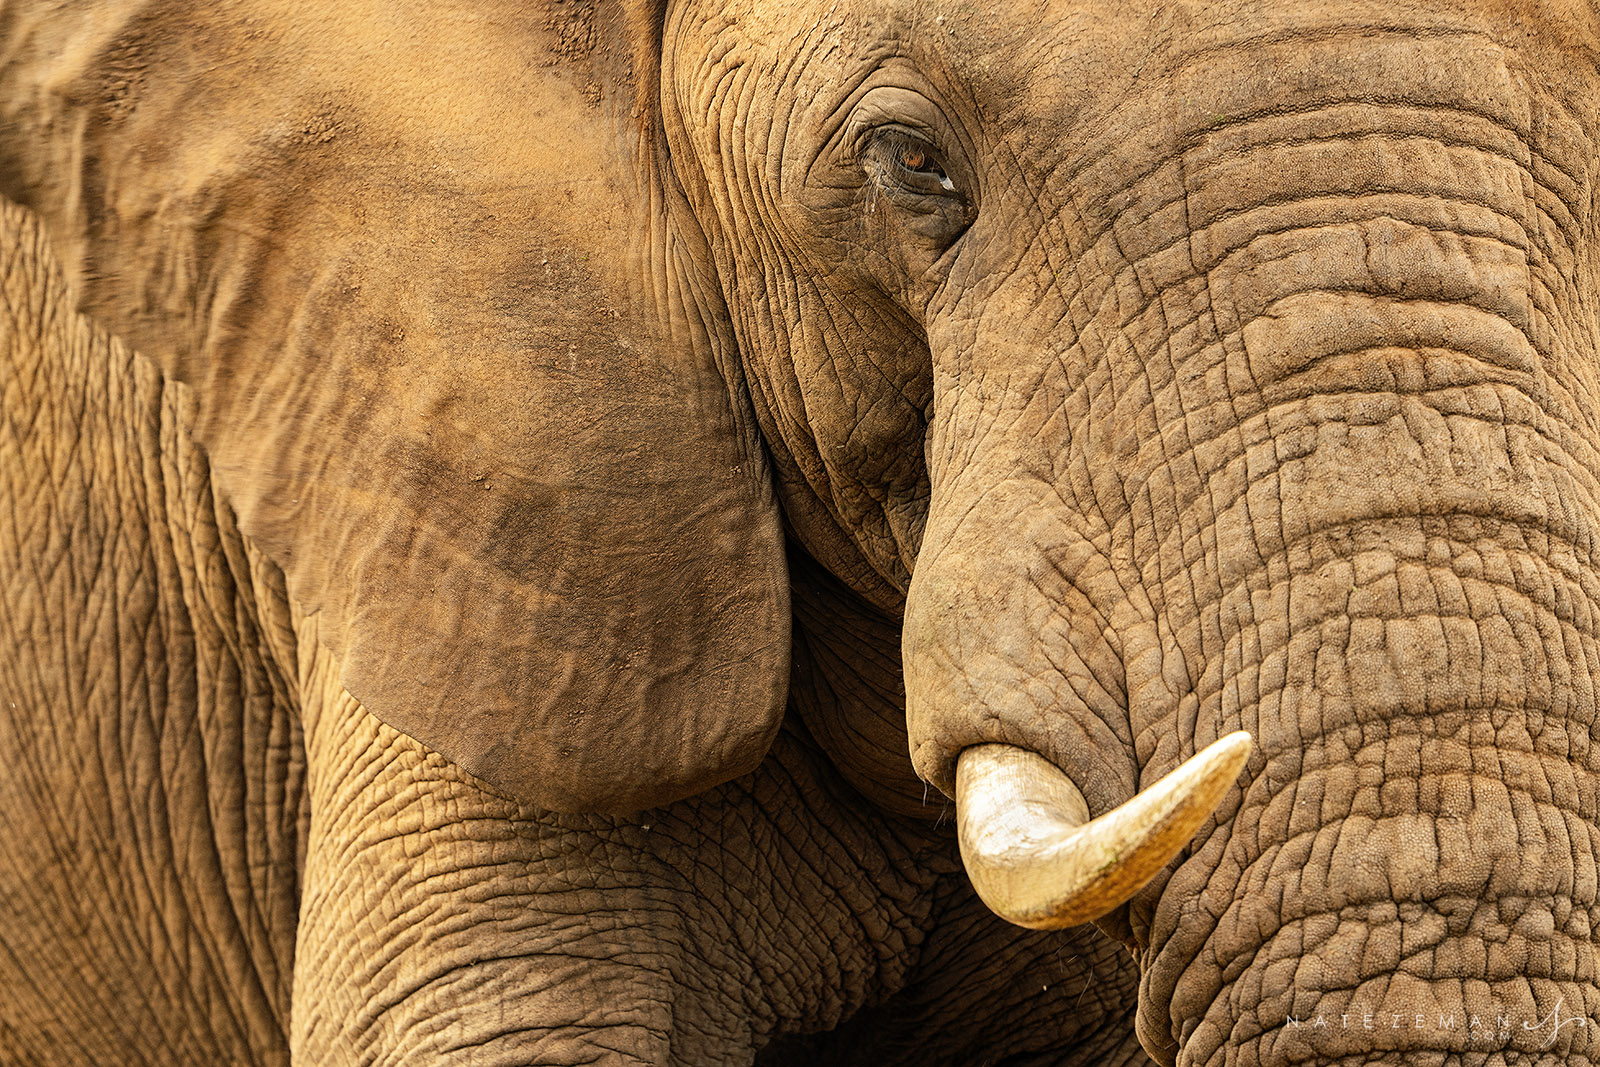 Staring eye to eye with the largest terrestrial animal on the planet has a special way of making you feel really small.